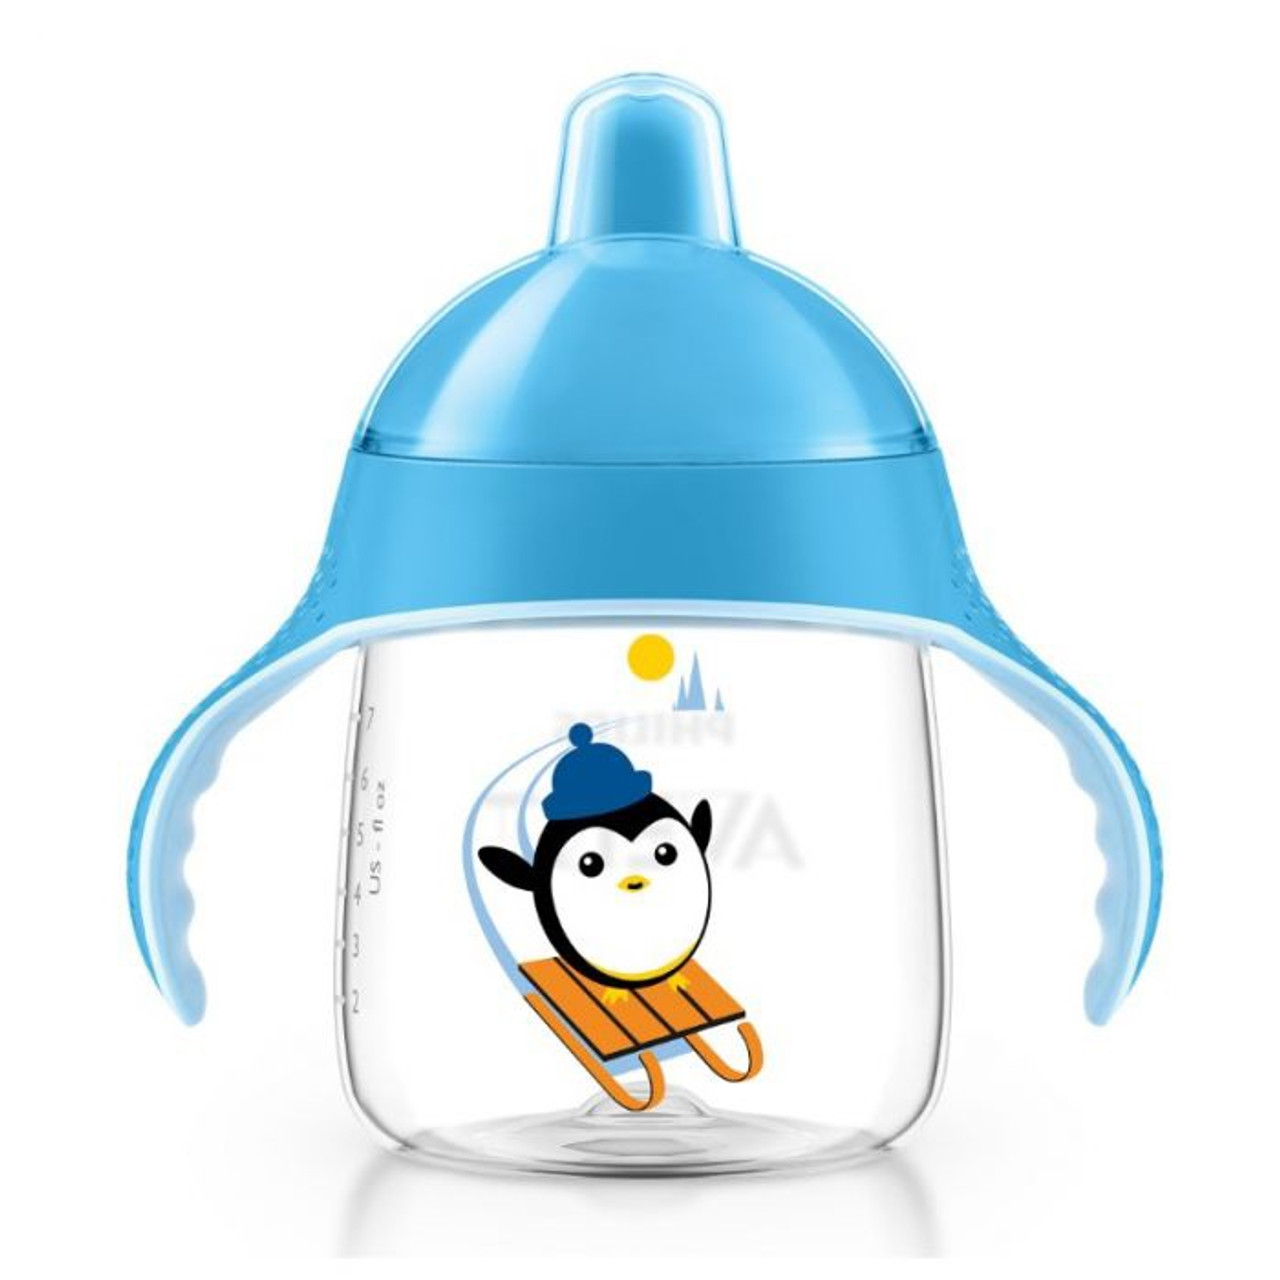 Avent Sip No Drip Spout Cup 260 ml 12 Months+ at Baby Barn Discounts Avent sip no drip transition cup is perfect for toddlers 12 months+.